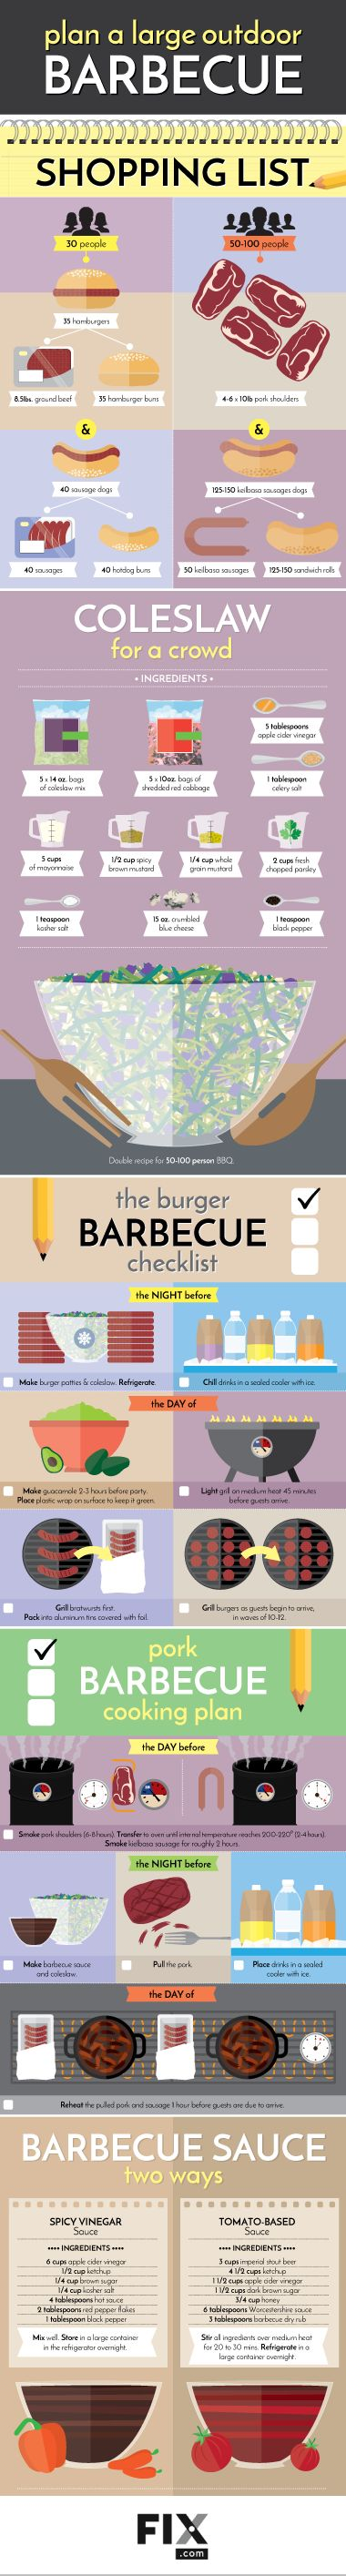 Planning a Large BBQ Cookout For a Crowd | Fix.com